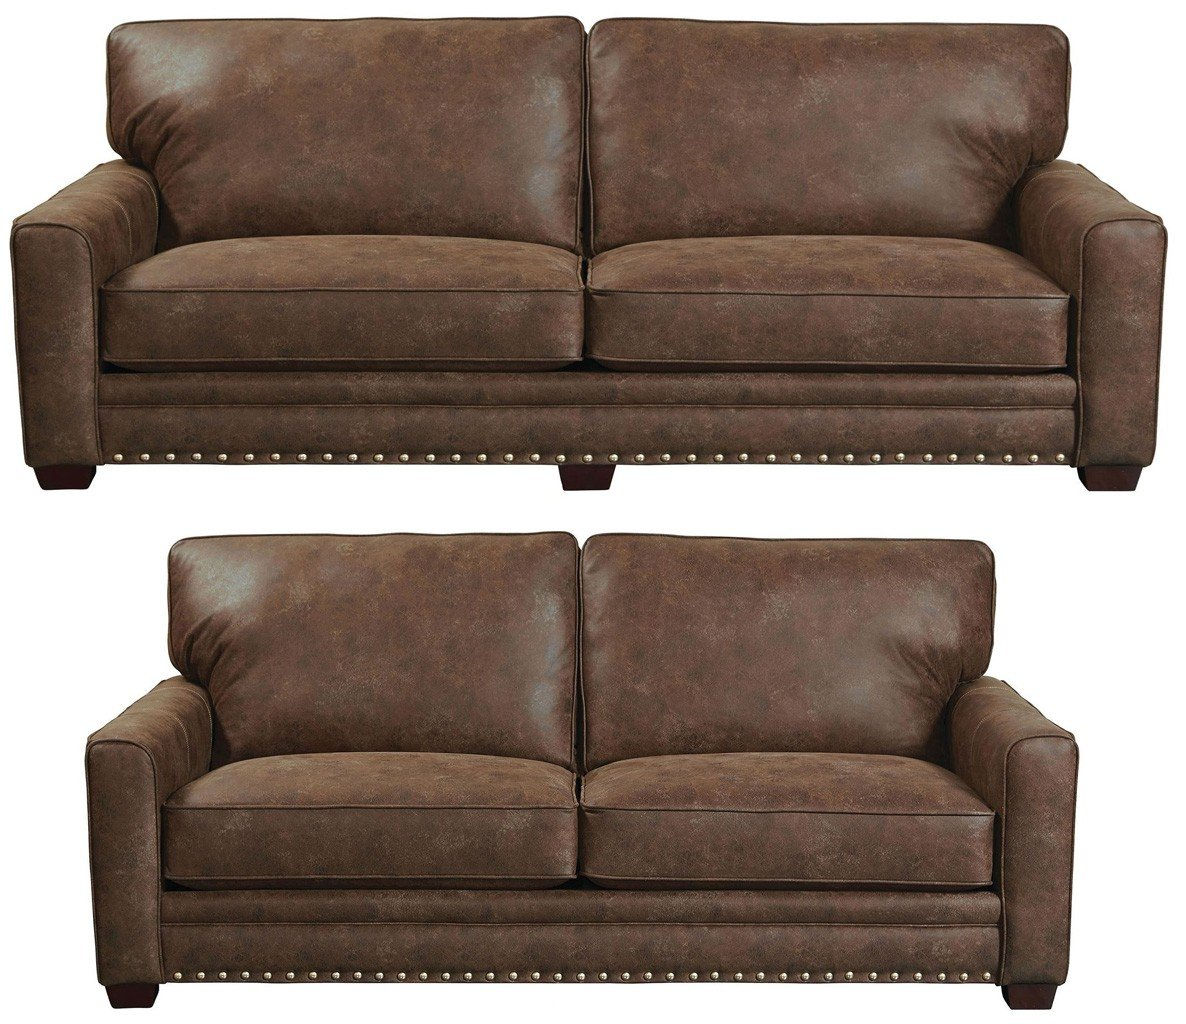 Faux Leather Sofa In A Box Elmsford Living Room Set Tanner